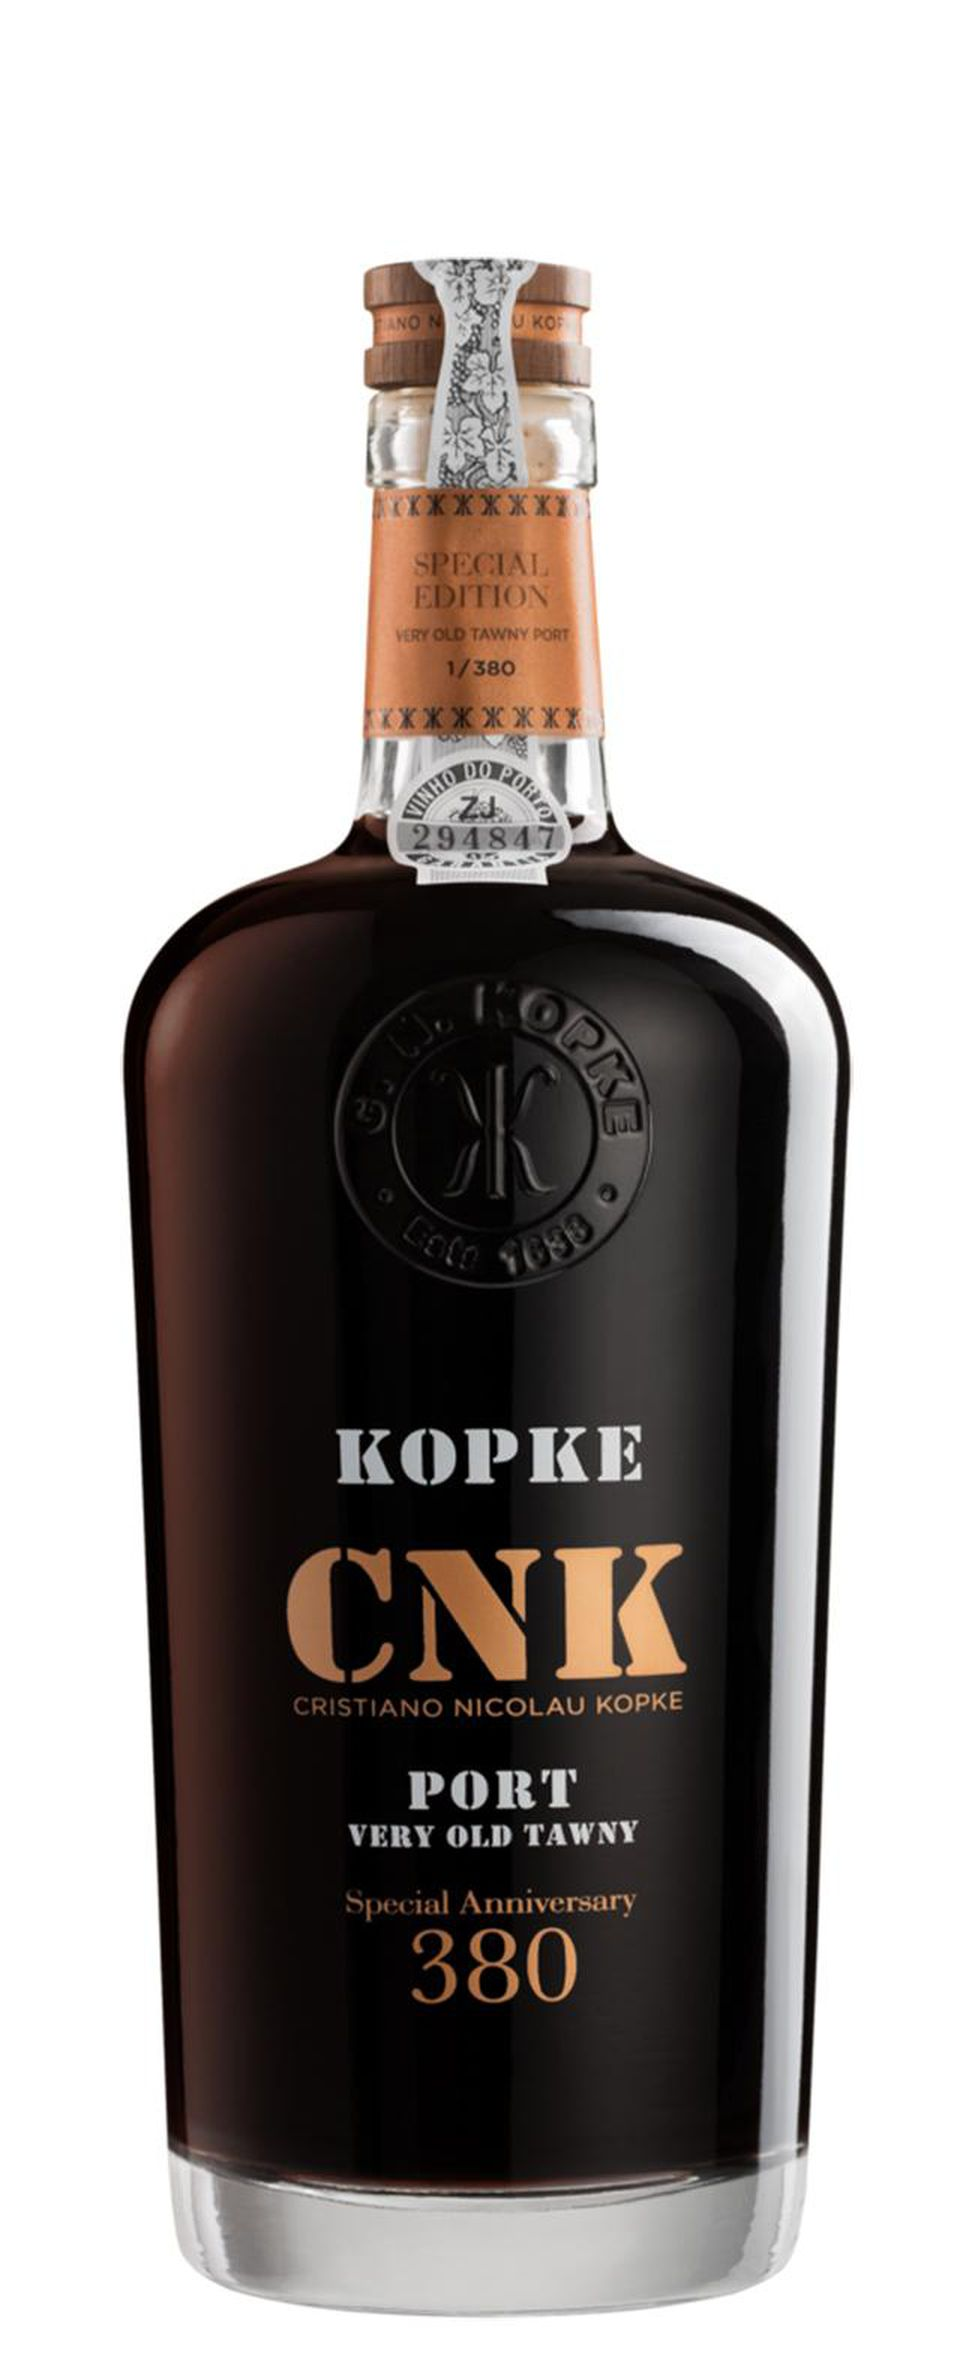 The ultimate in tawnies may be this rare bottle from the world's oldest Port wine house. KOPKE